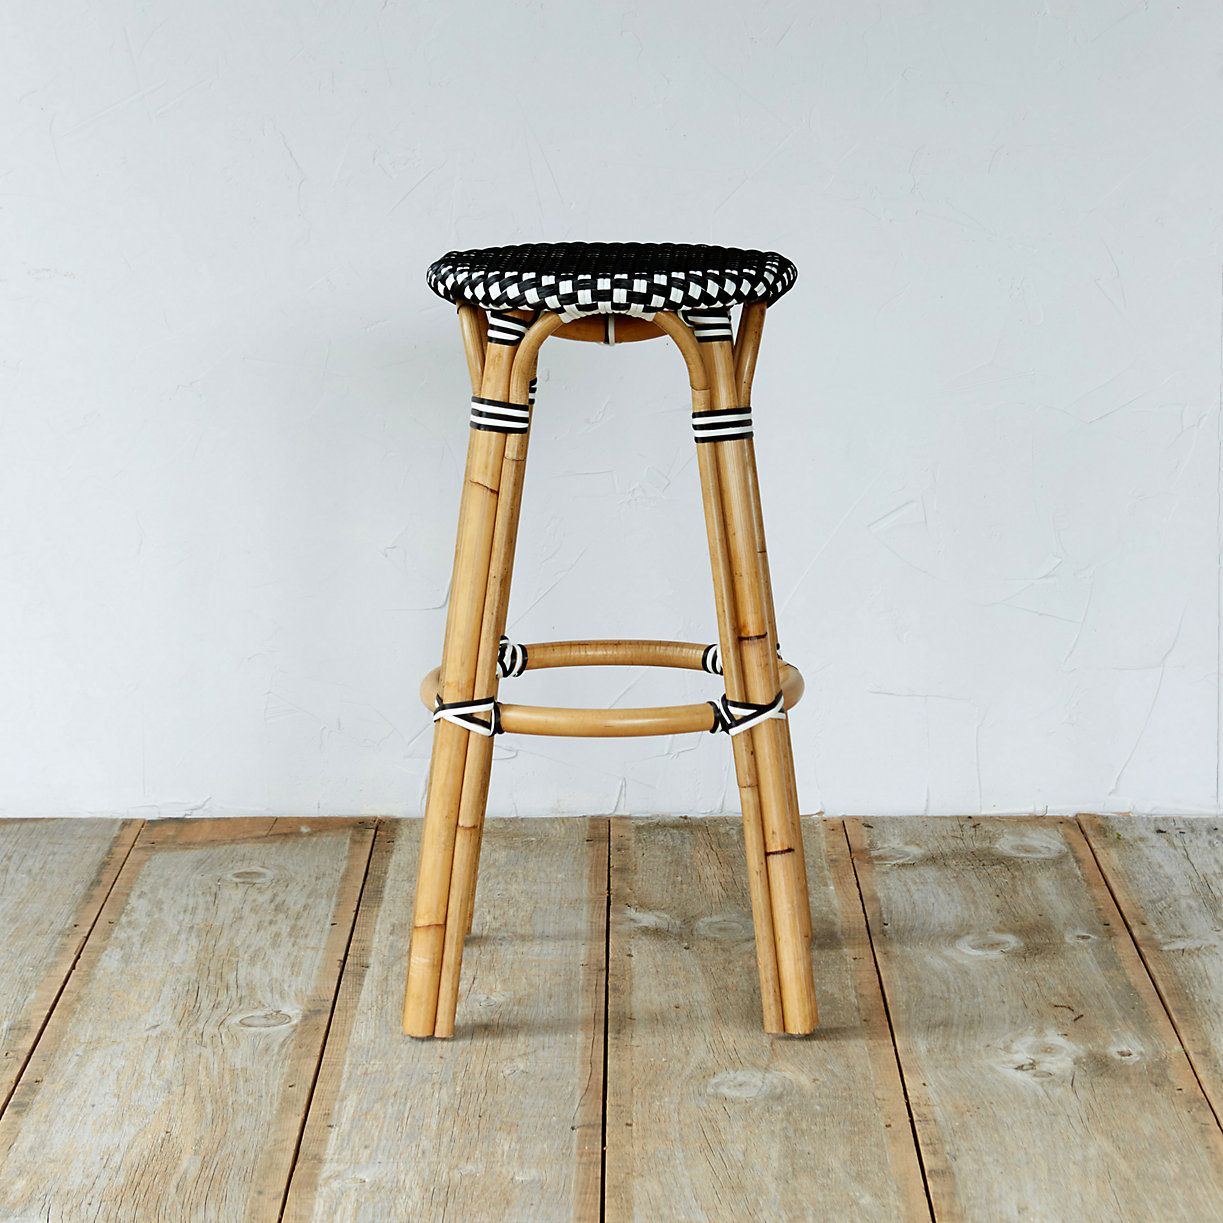 Rattan Café Bar Stool in Outdoor Living Outdoor Seating at